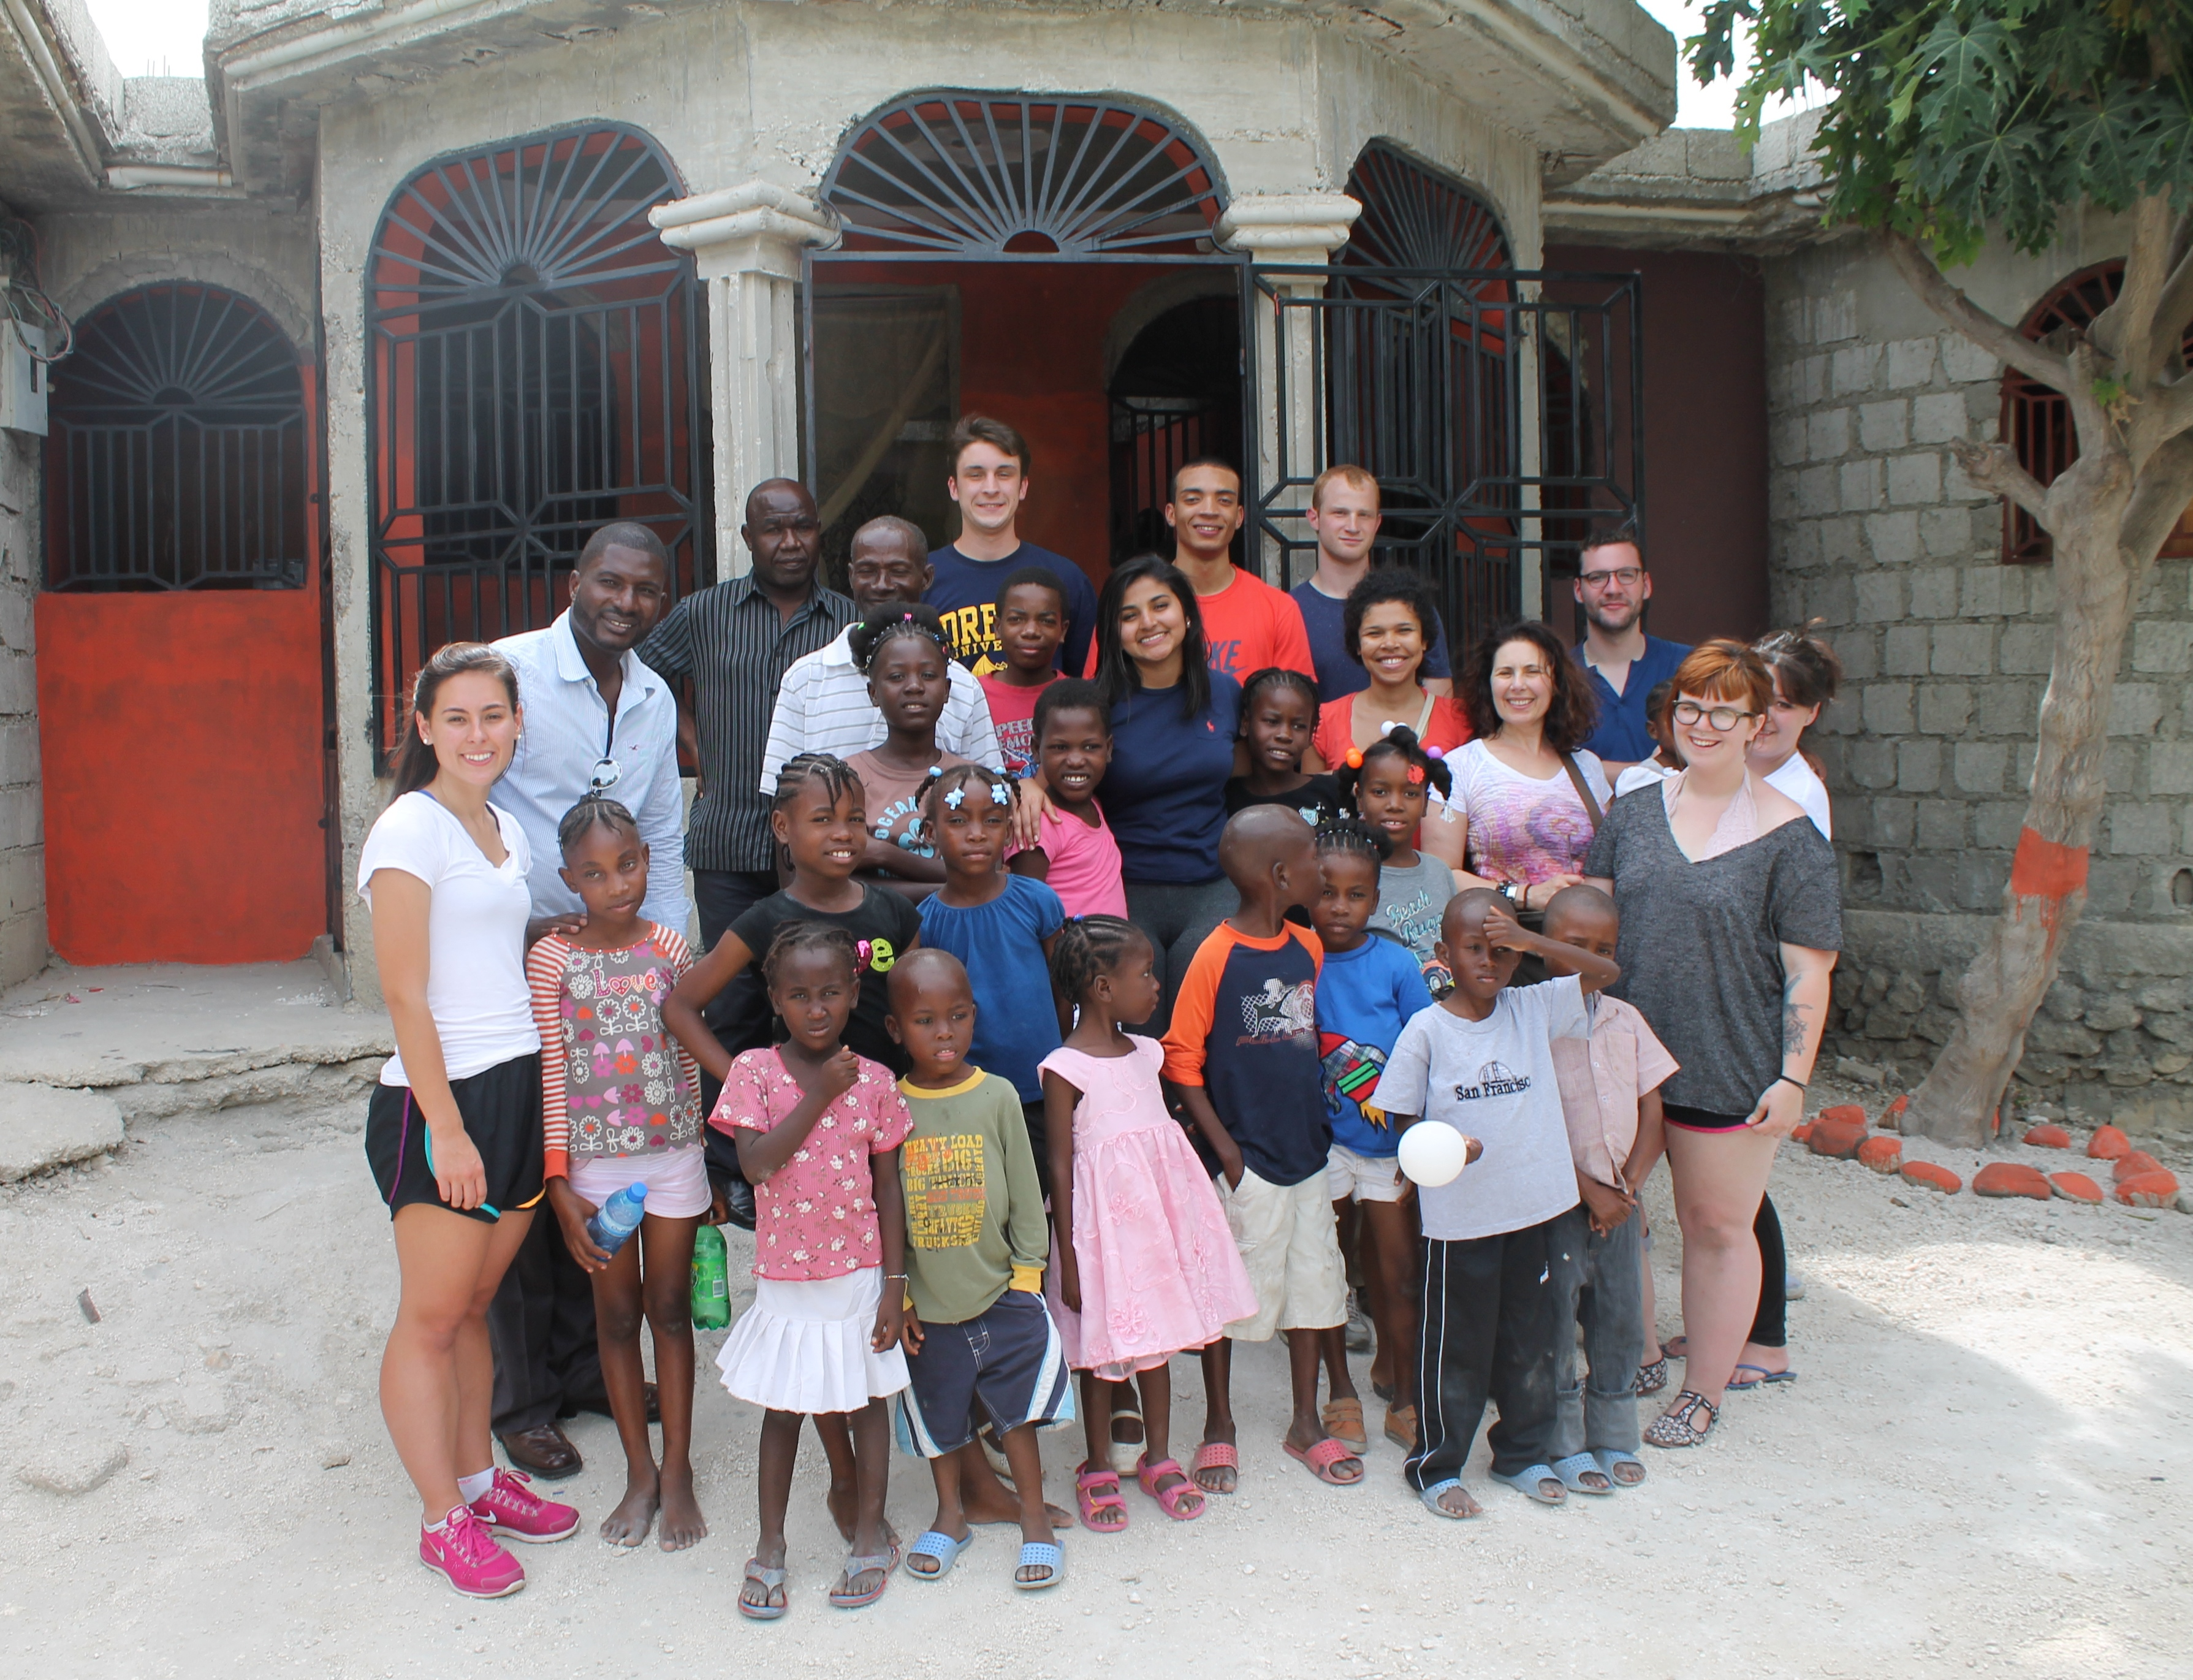 Drexel Student in Haiti 2014 Group Photo